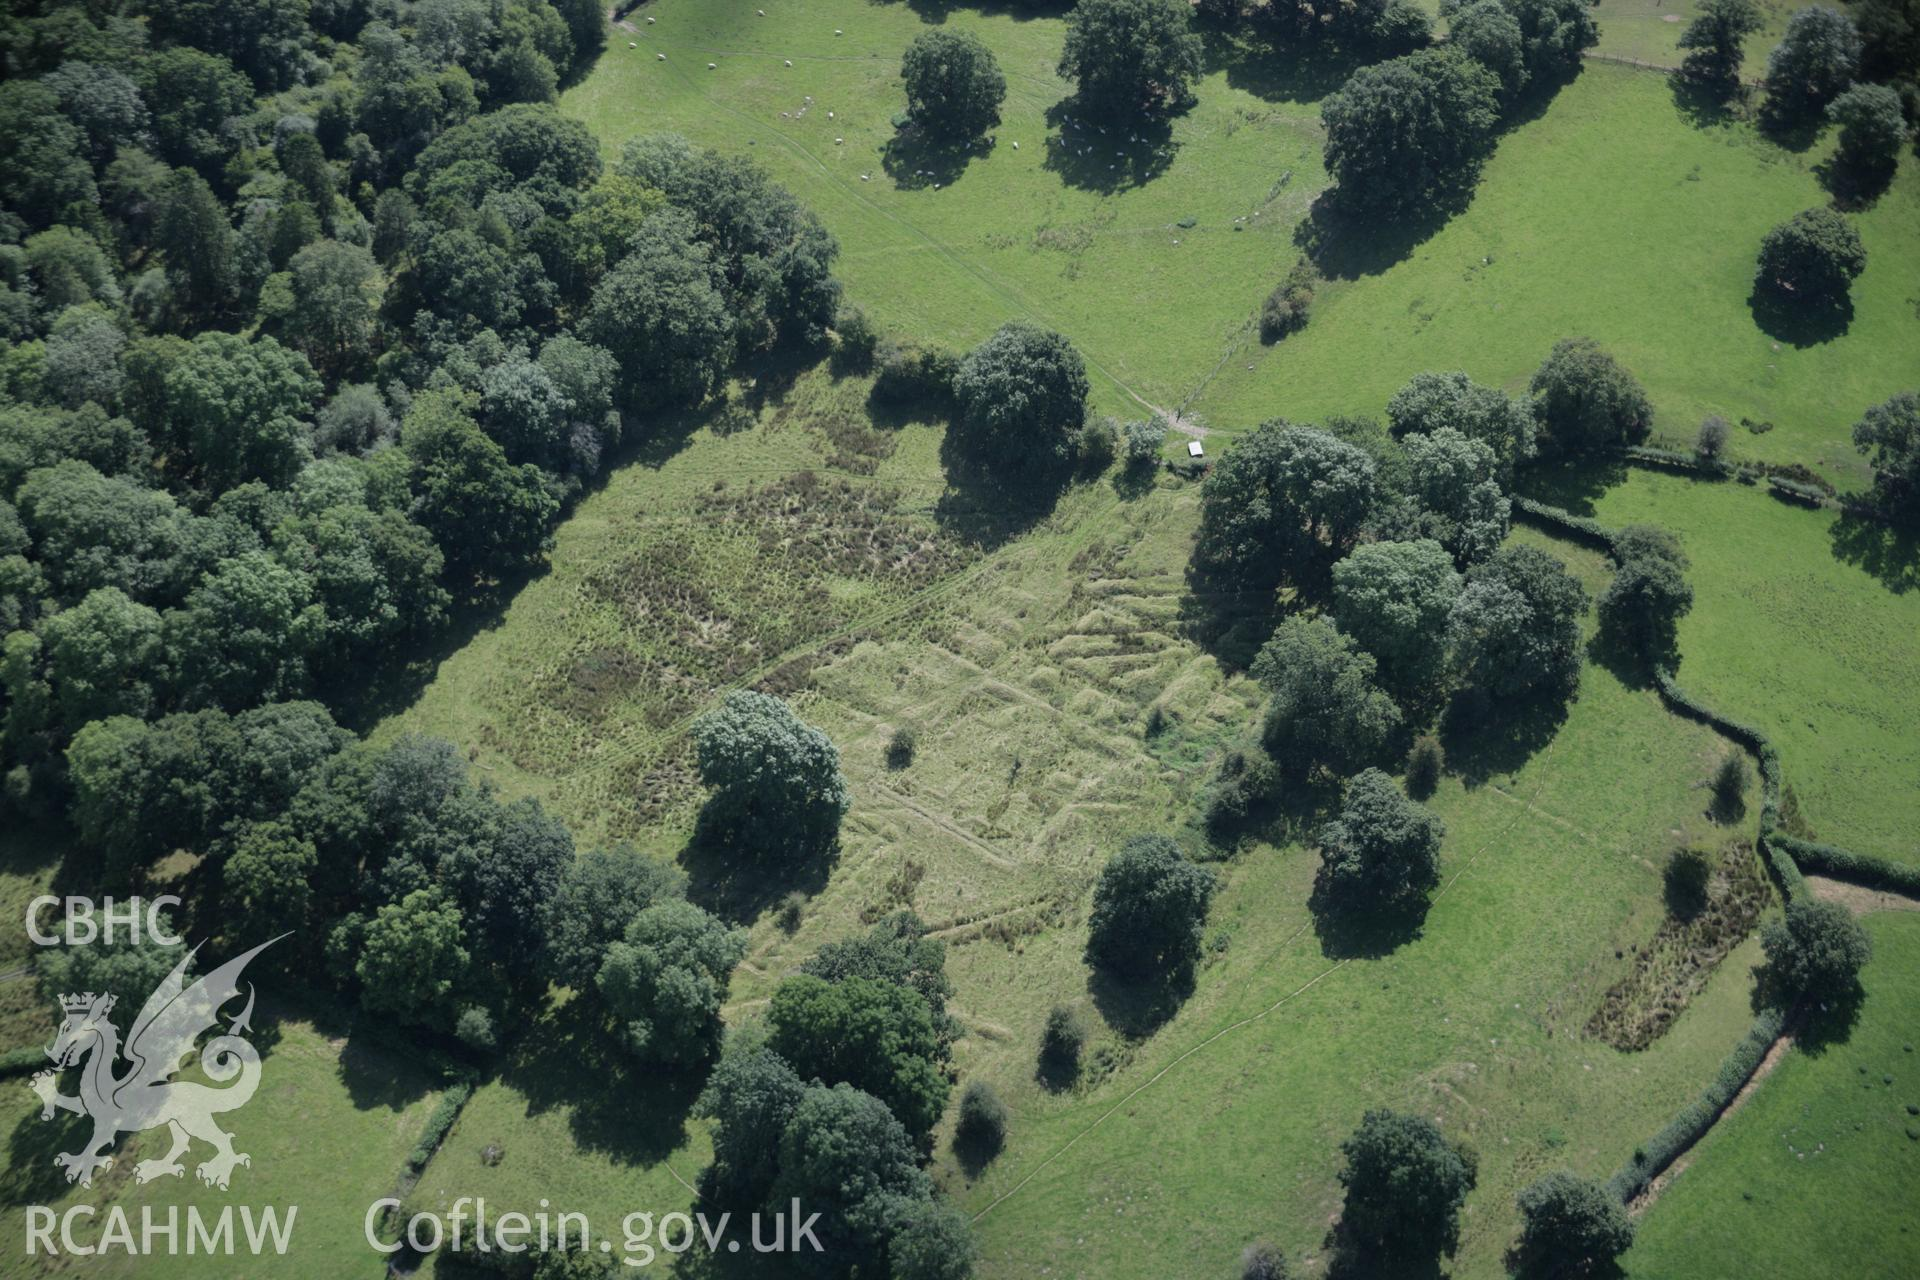 RCAHMW colour oblique aerial photograph of Castell Collen Roman Fort from the north. Taken on 02 September 2005 by Toby Driver